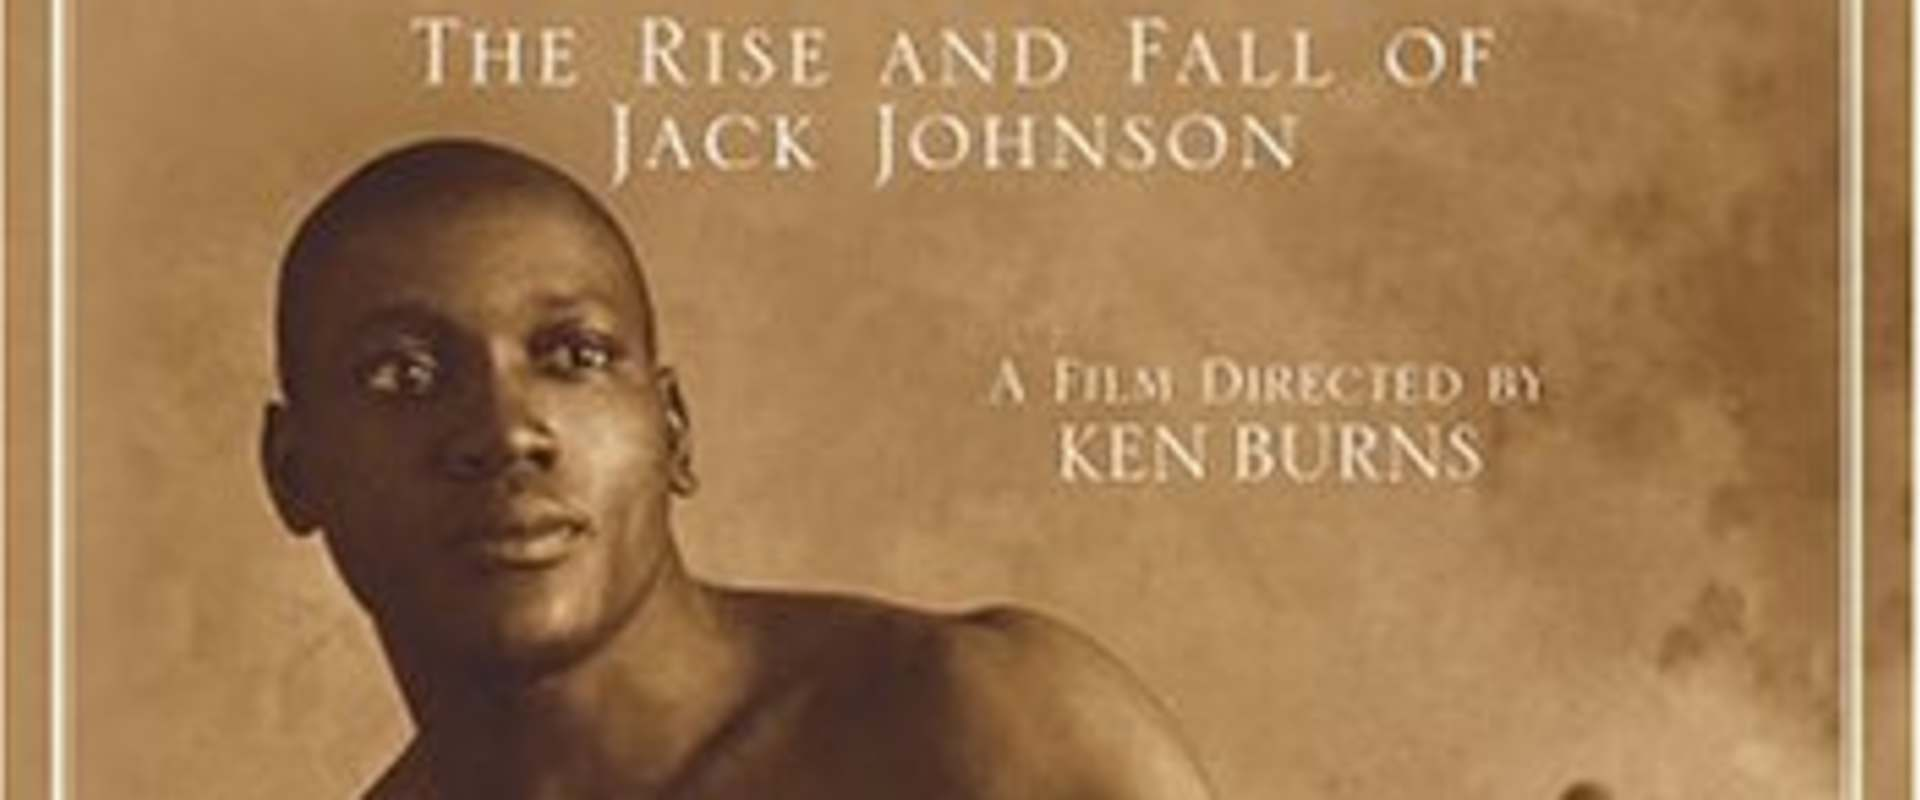 Unforgivable Blackness: The Rise and Fall of Jack Johnson background 1